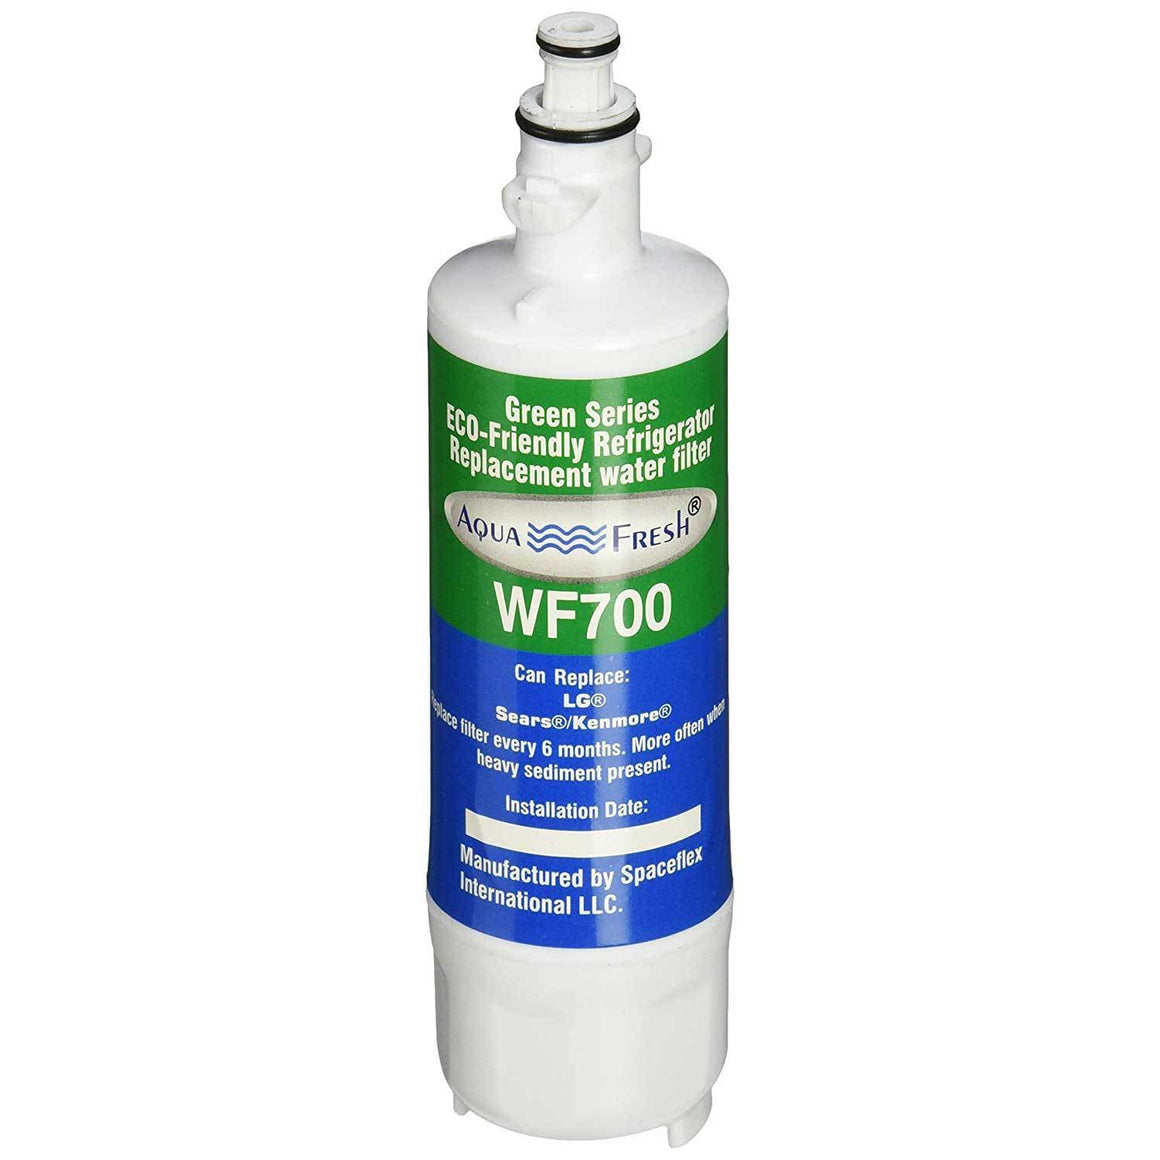 Aqua Fresh WF700 Refrigerator Water Filter Replacement for LG LT700P Part adq36006101